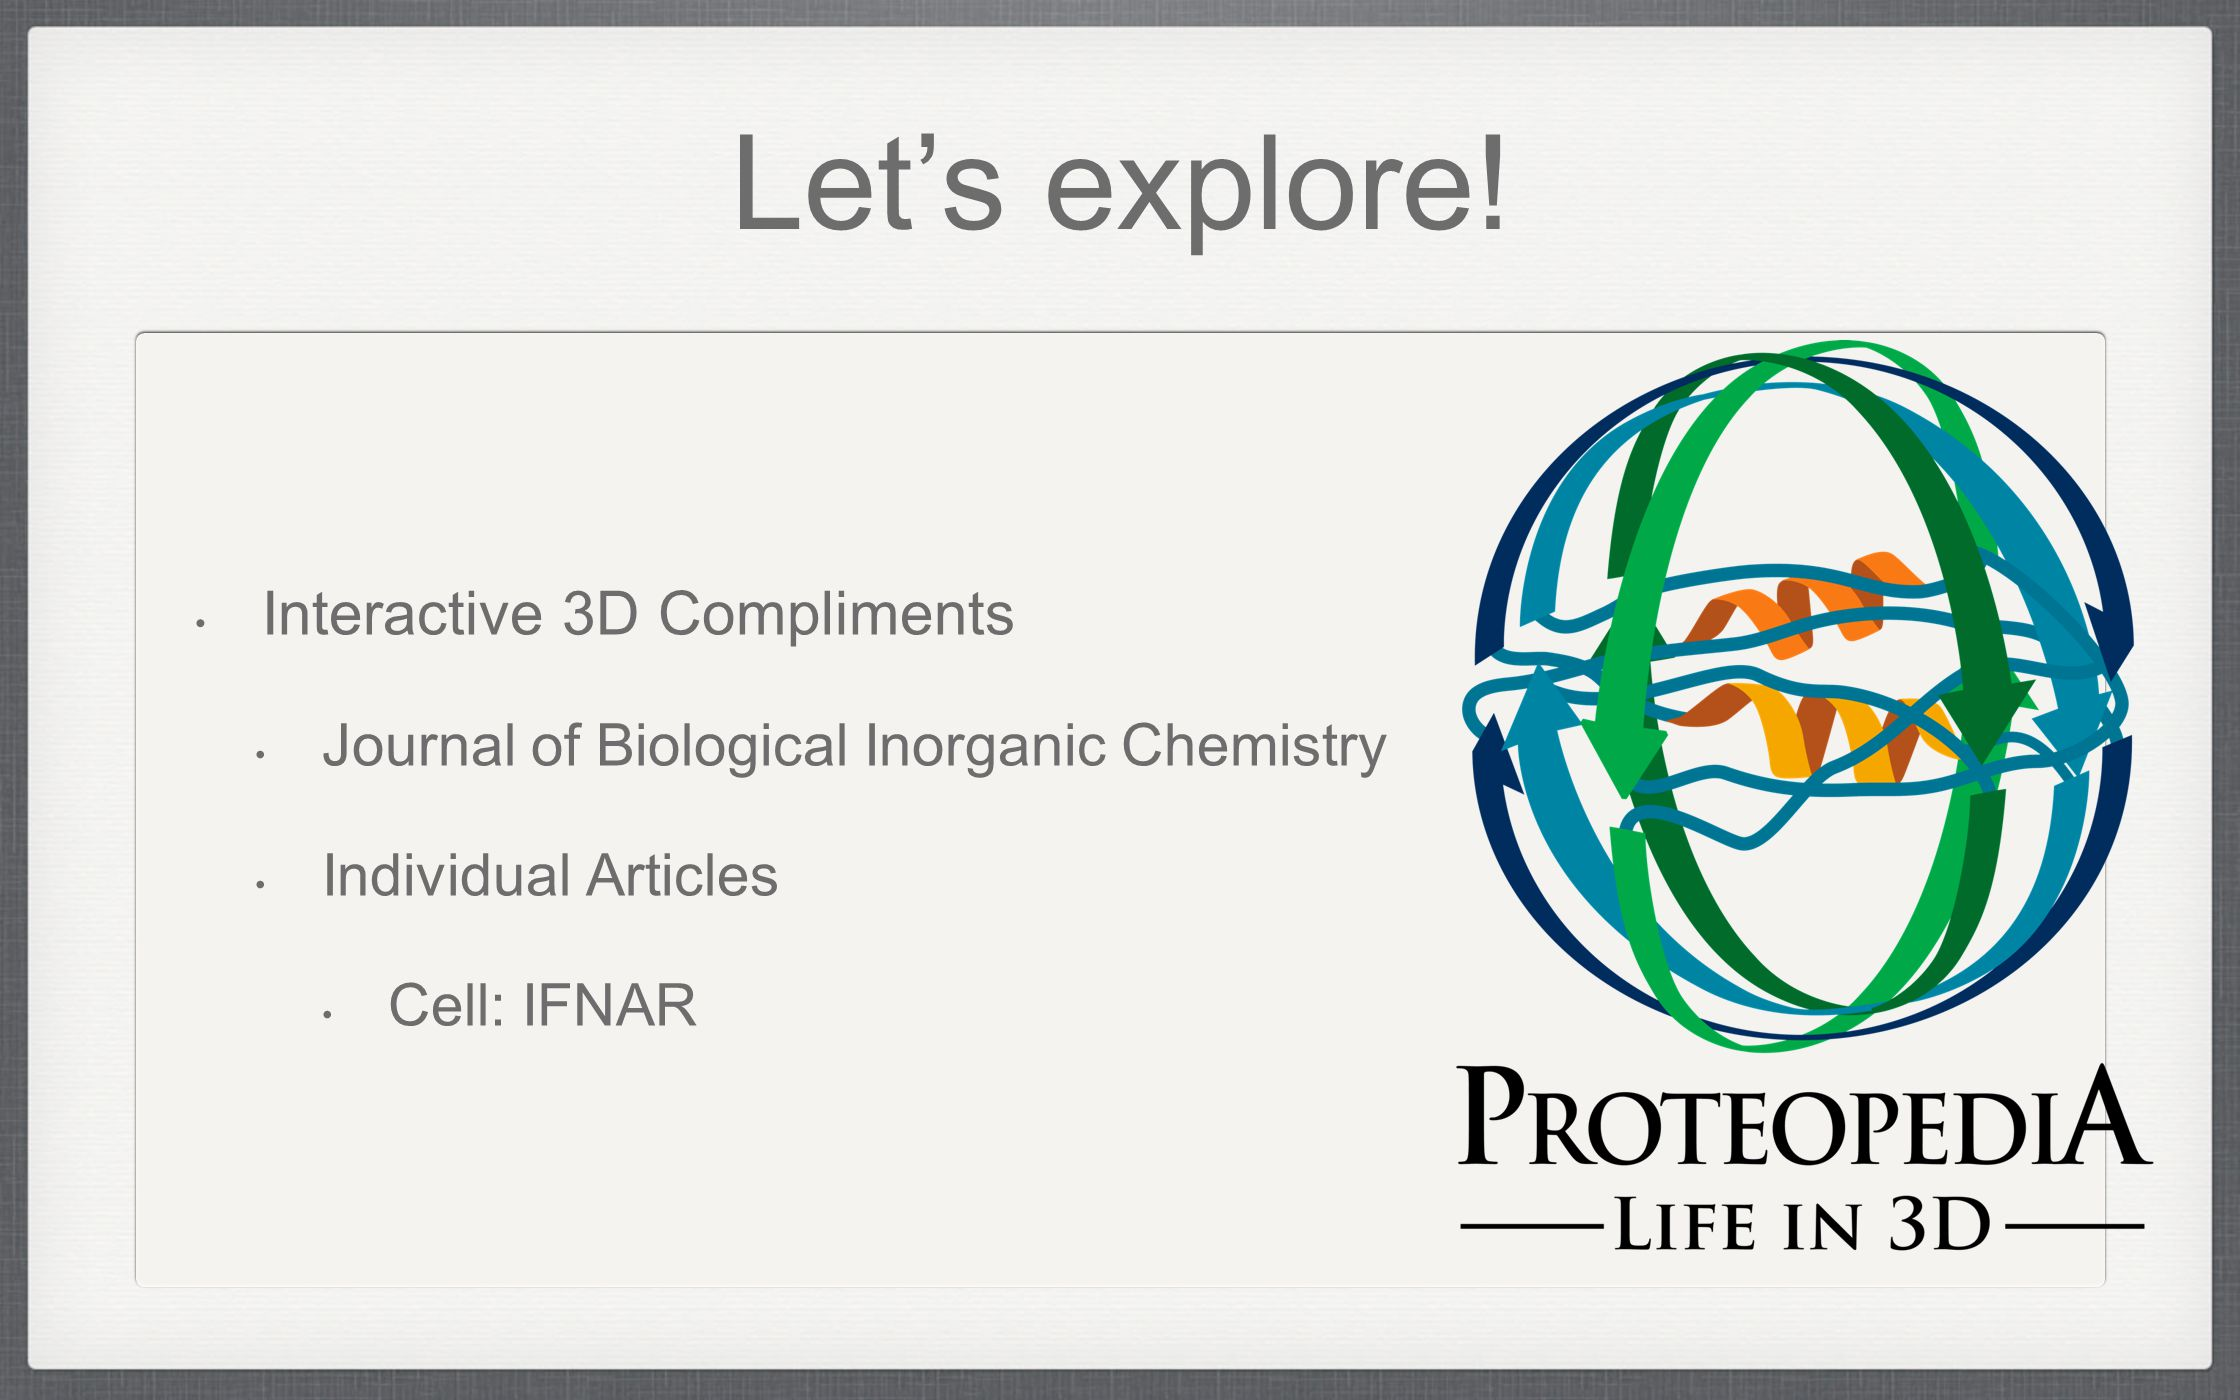 Interactive 3D Compliments Journal of Biological Inorganic Chemistry Individual Articles Cell: IFNAR Let's explore!